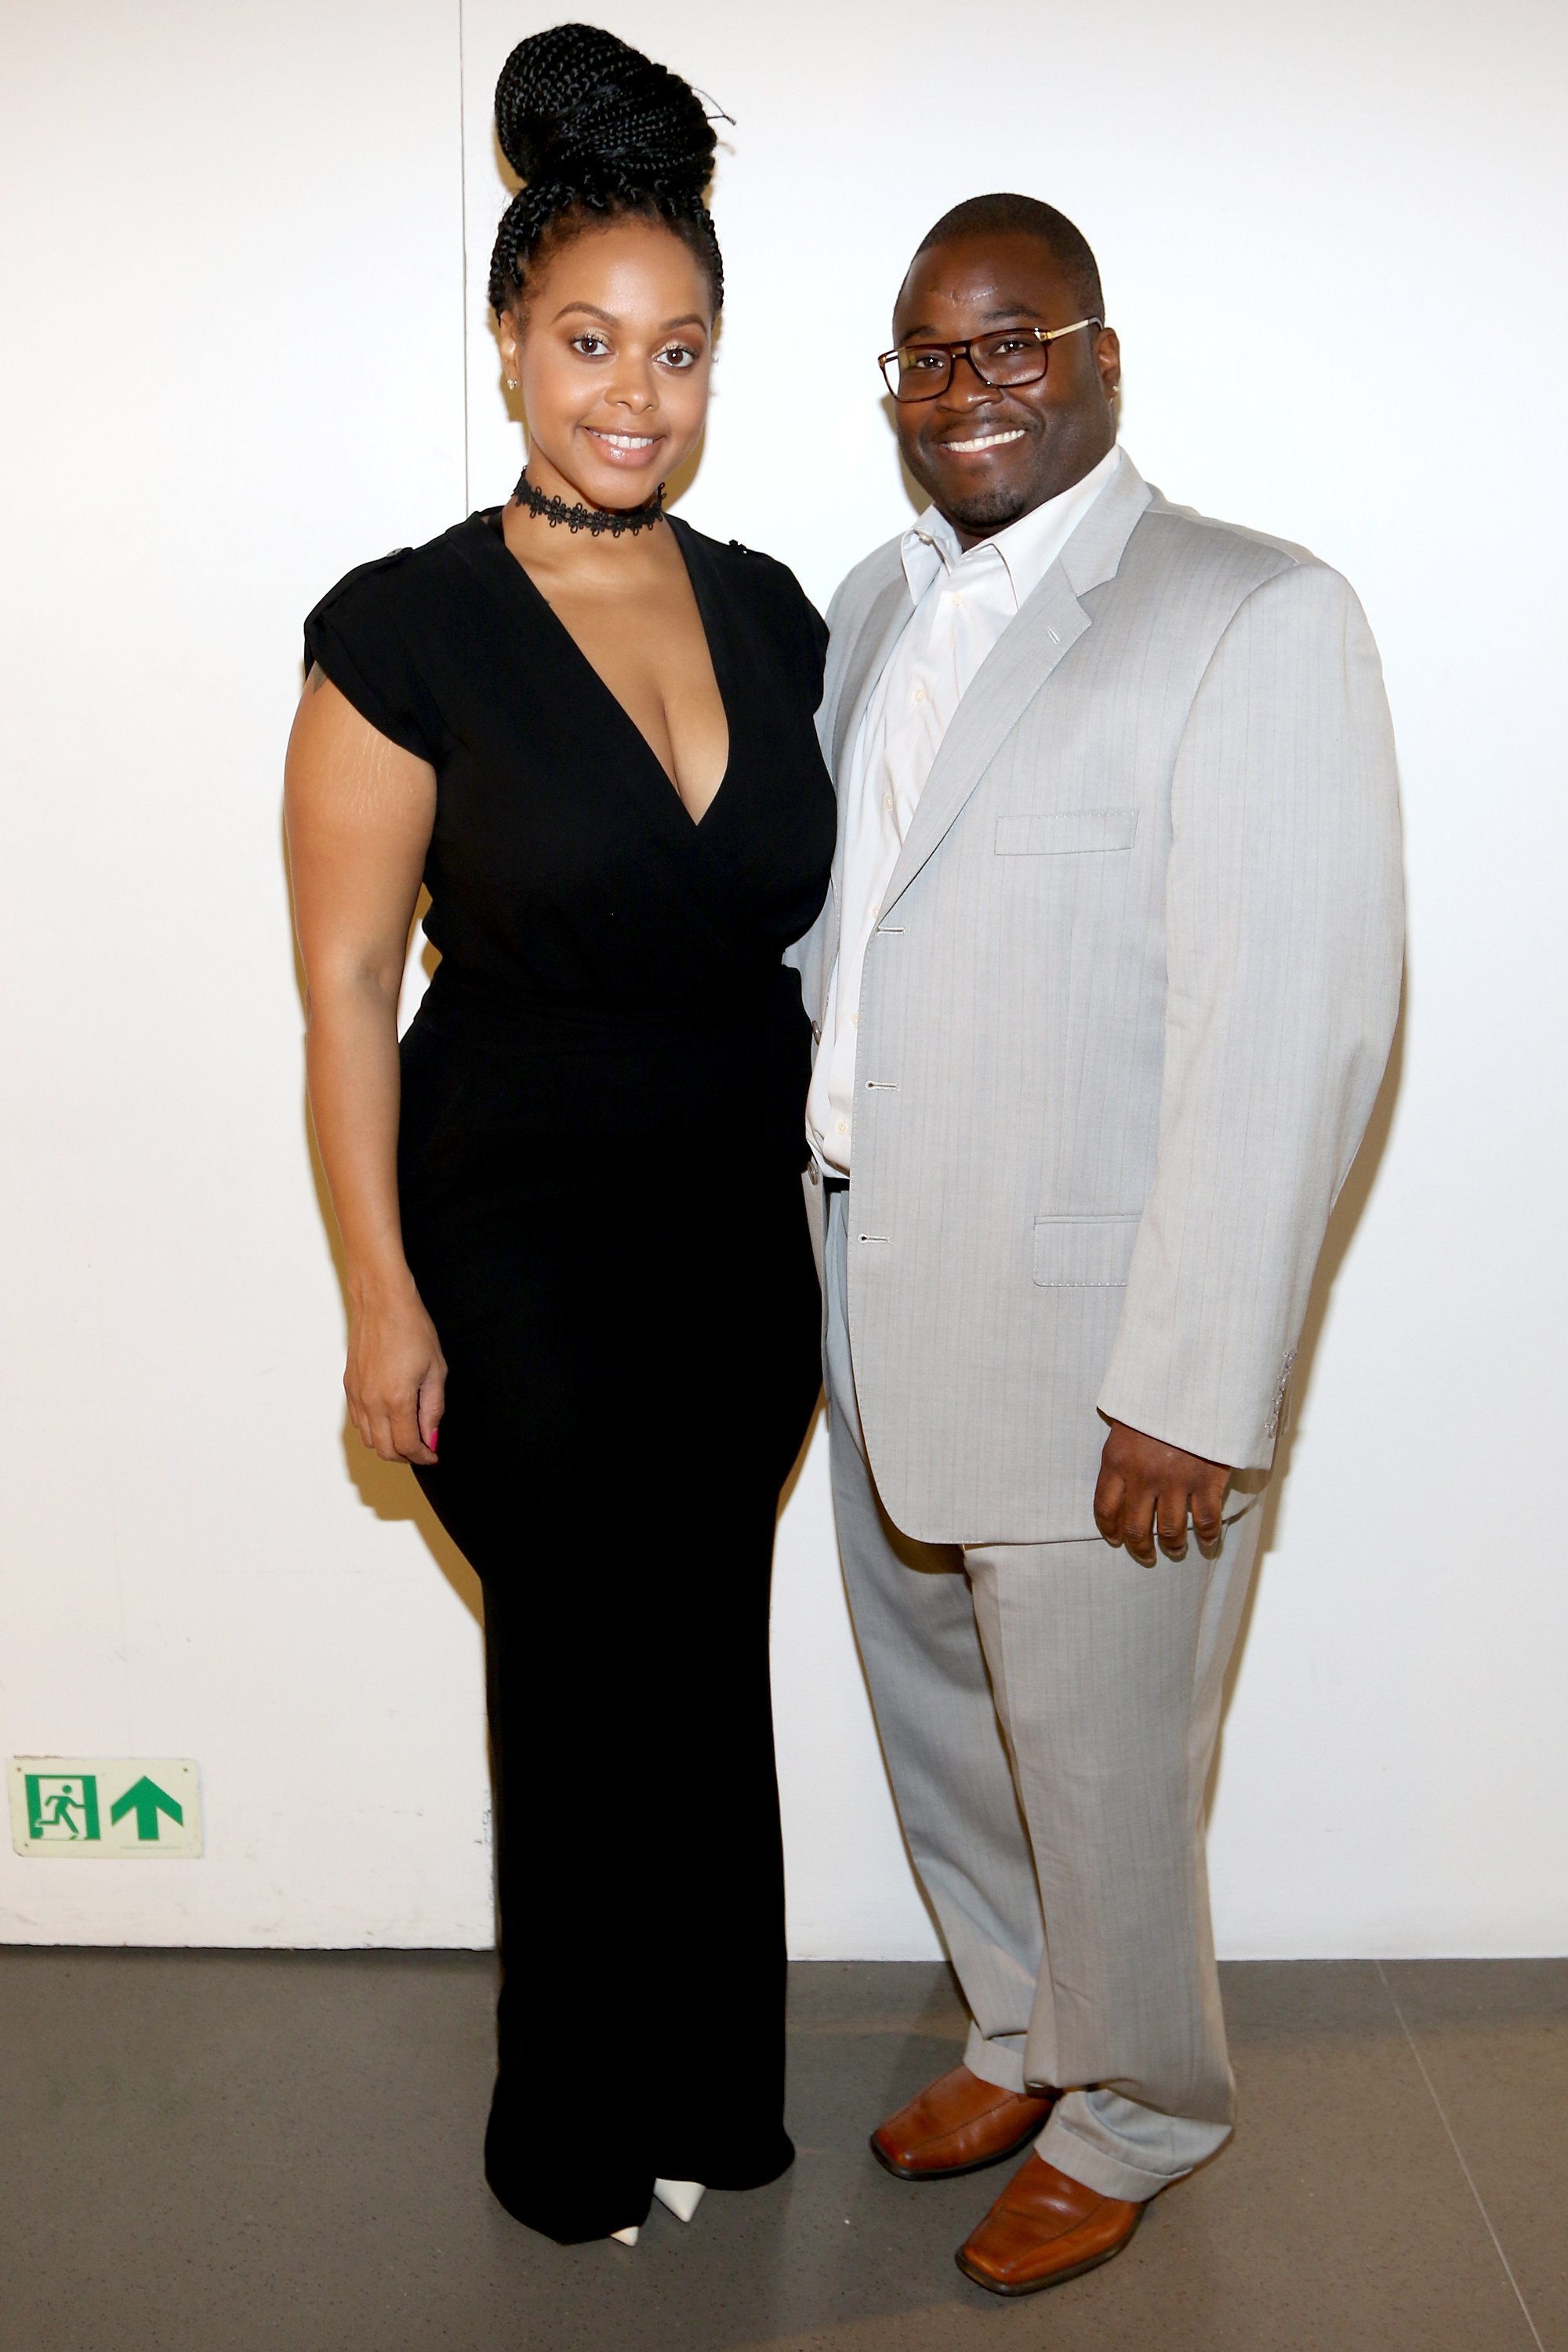 Dr. Nicholas Stapleton and Chrisette Michele attend the Academy Charter School Art Auction Fundraiser, June 2017. | Photo: GettyImages/Global Images of Ukraine